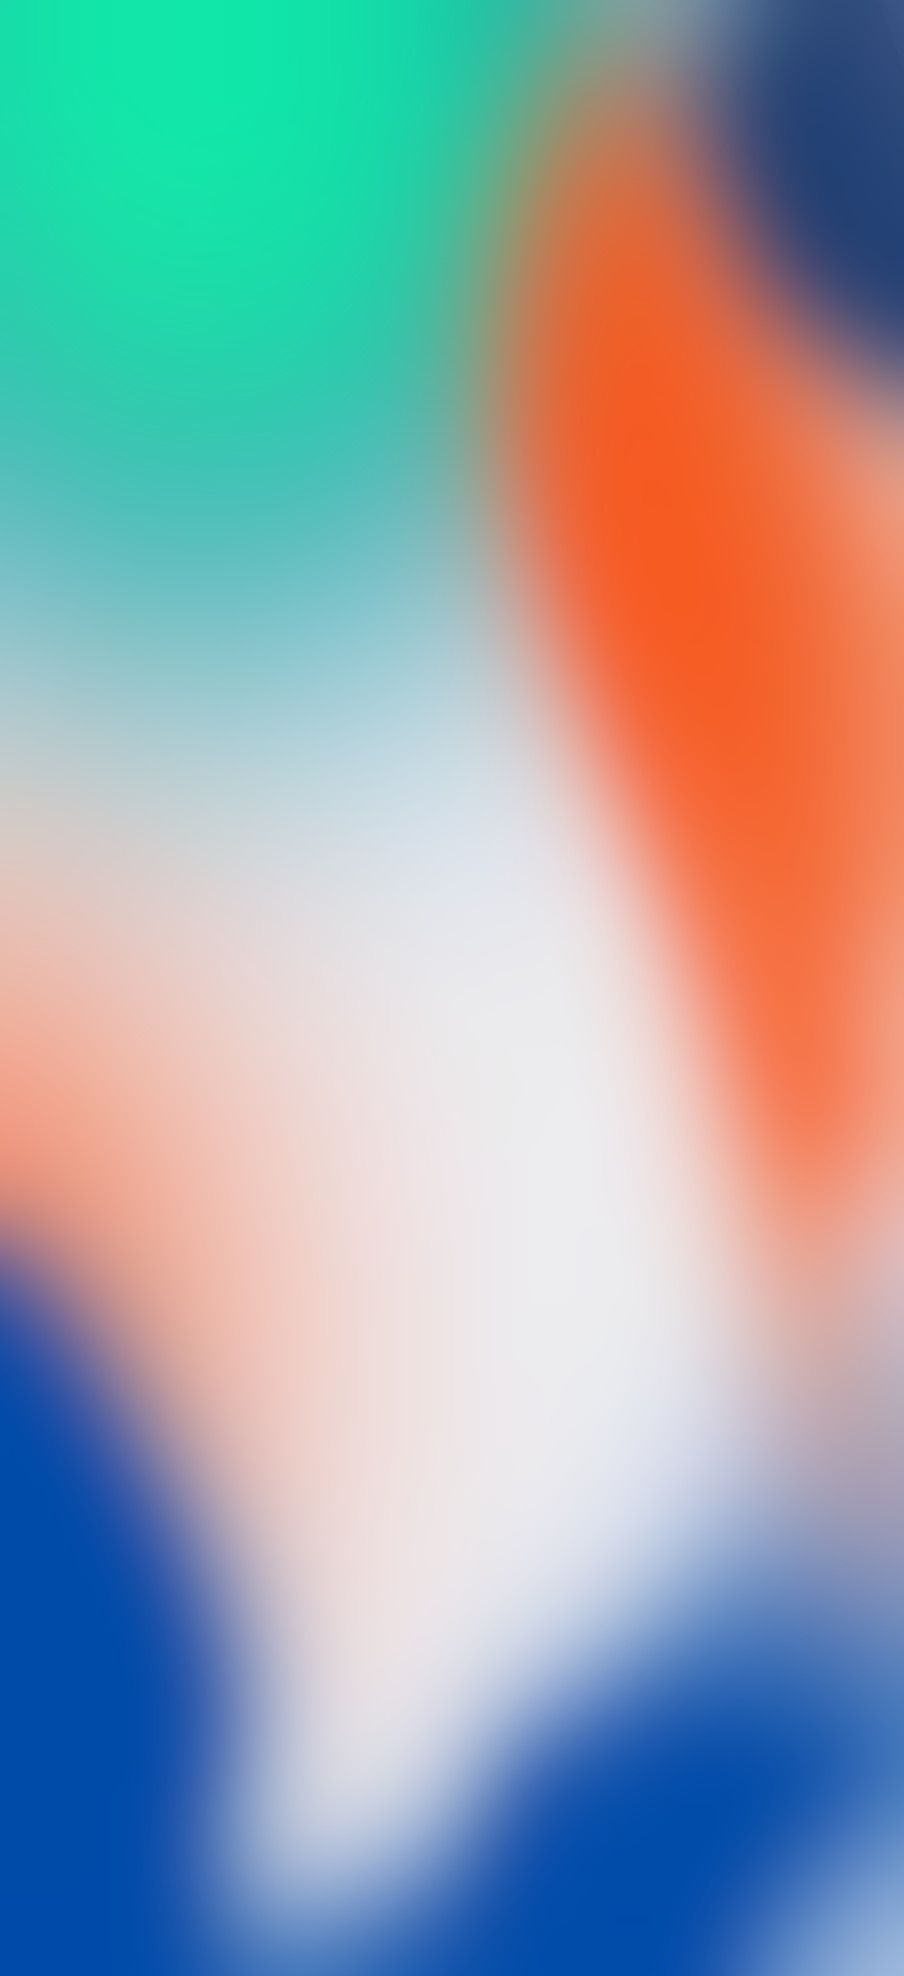 904x1976 iOS 11, iPhone X, orange, green, blue, Stock, abstract ...